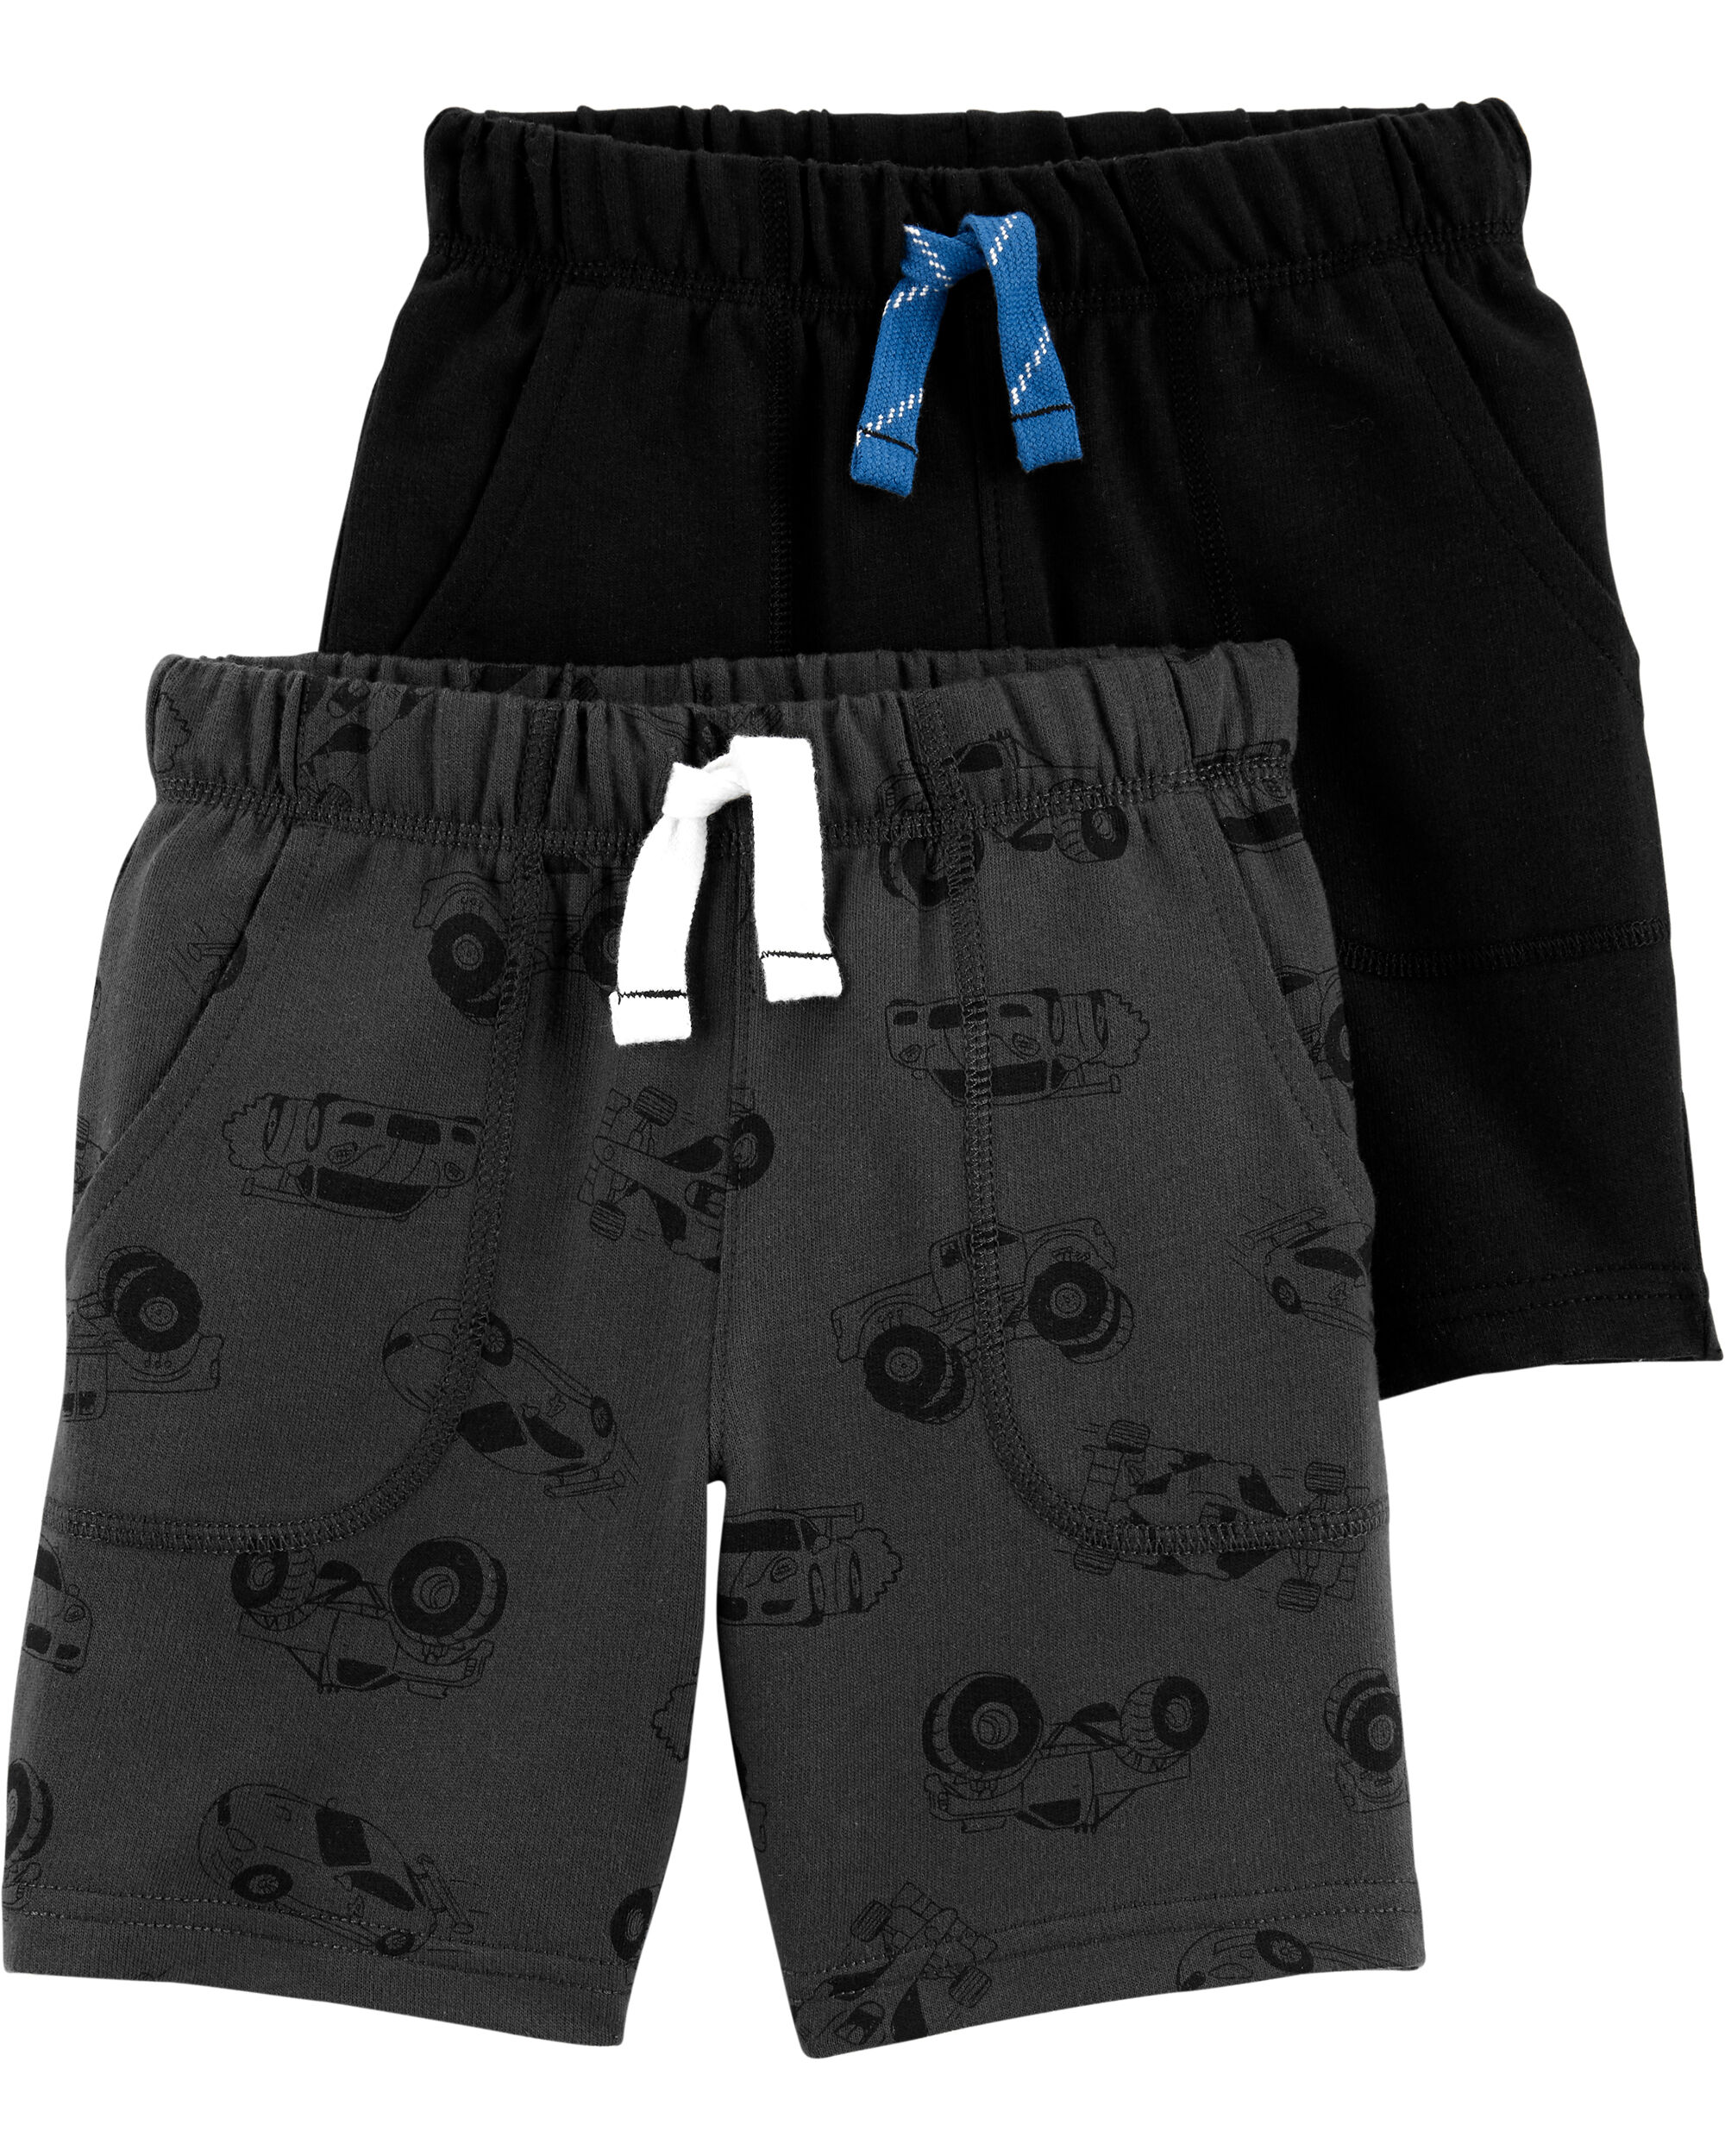 *DOORBUSTER* 2-Pack French Terry Shorts